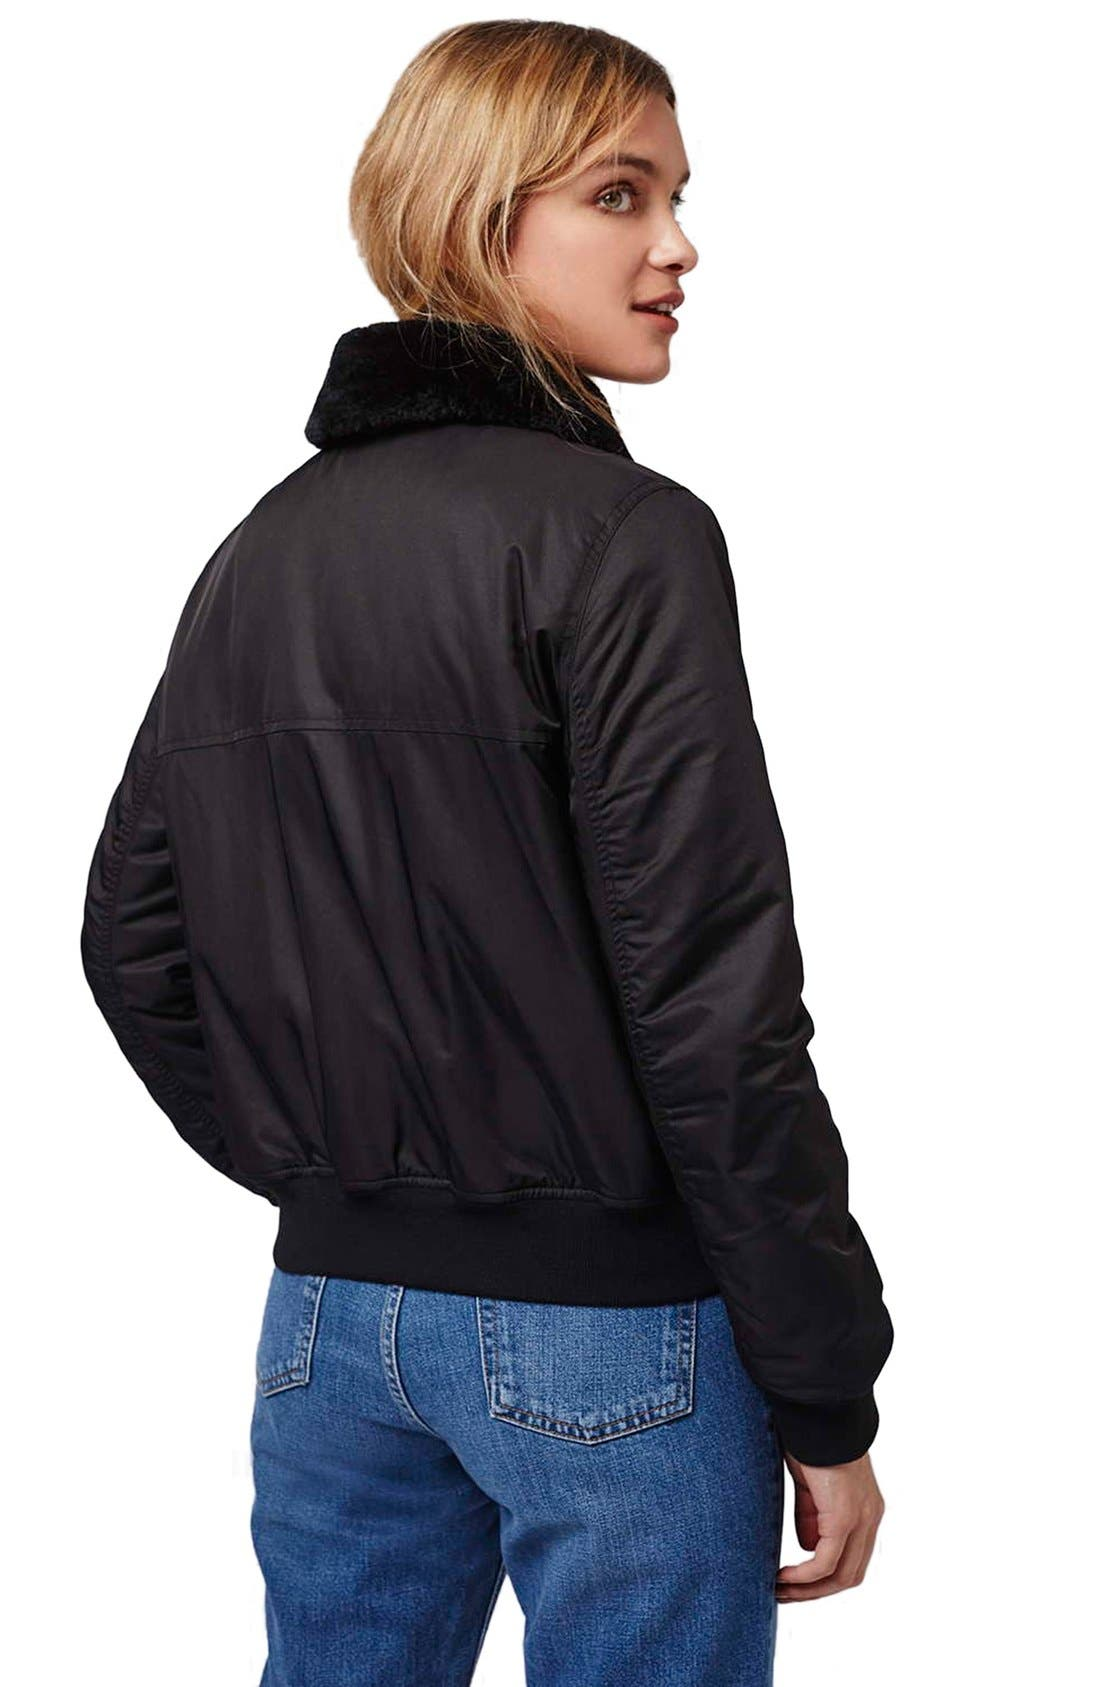 Alternate Image 3  - Topshop 'MA1' Bomber Jacket with Faux Fur Collar (Petite)